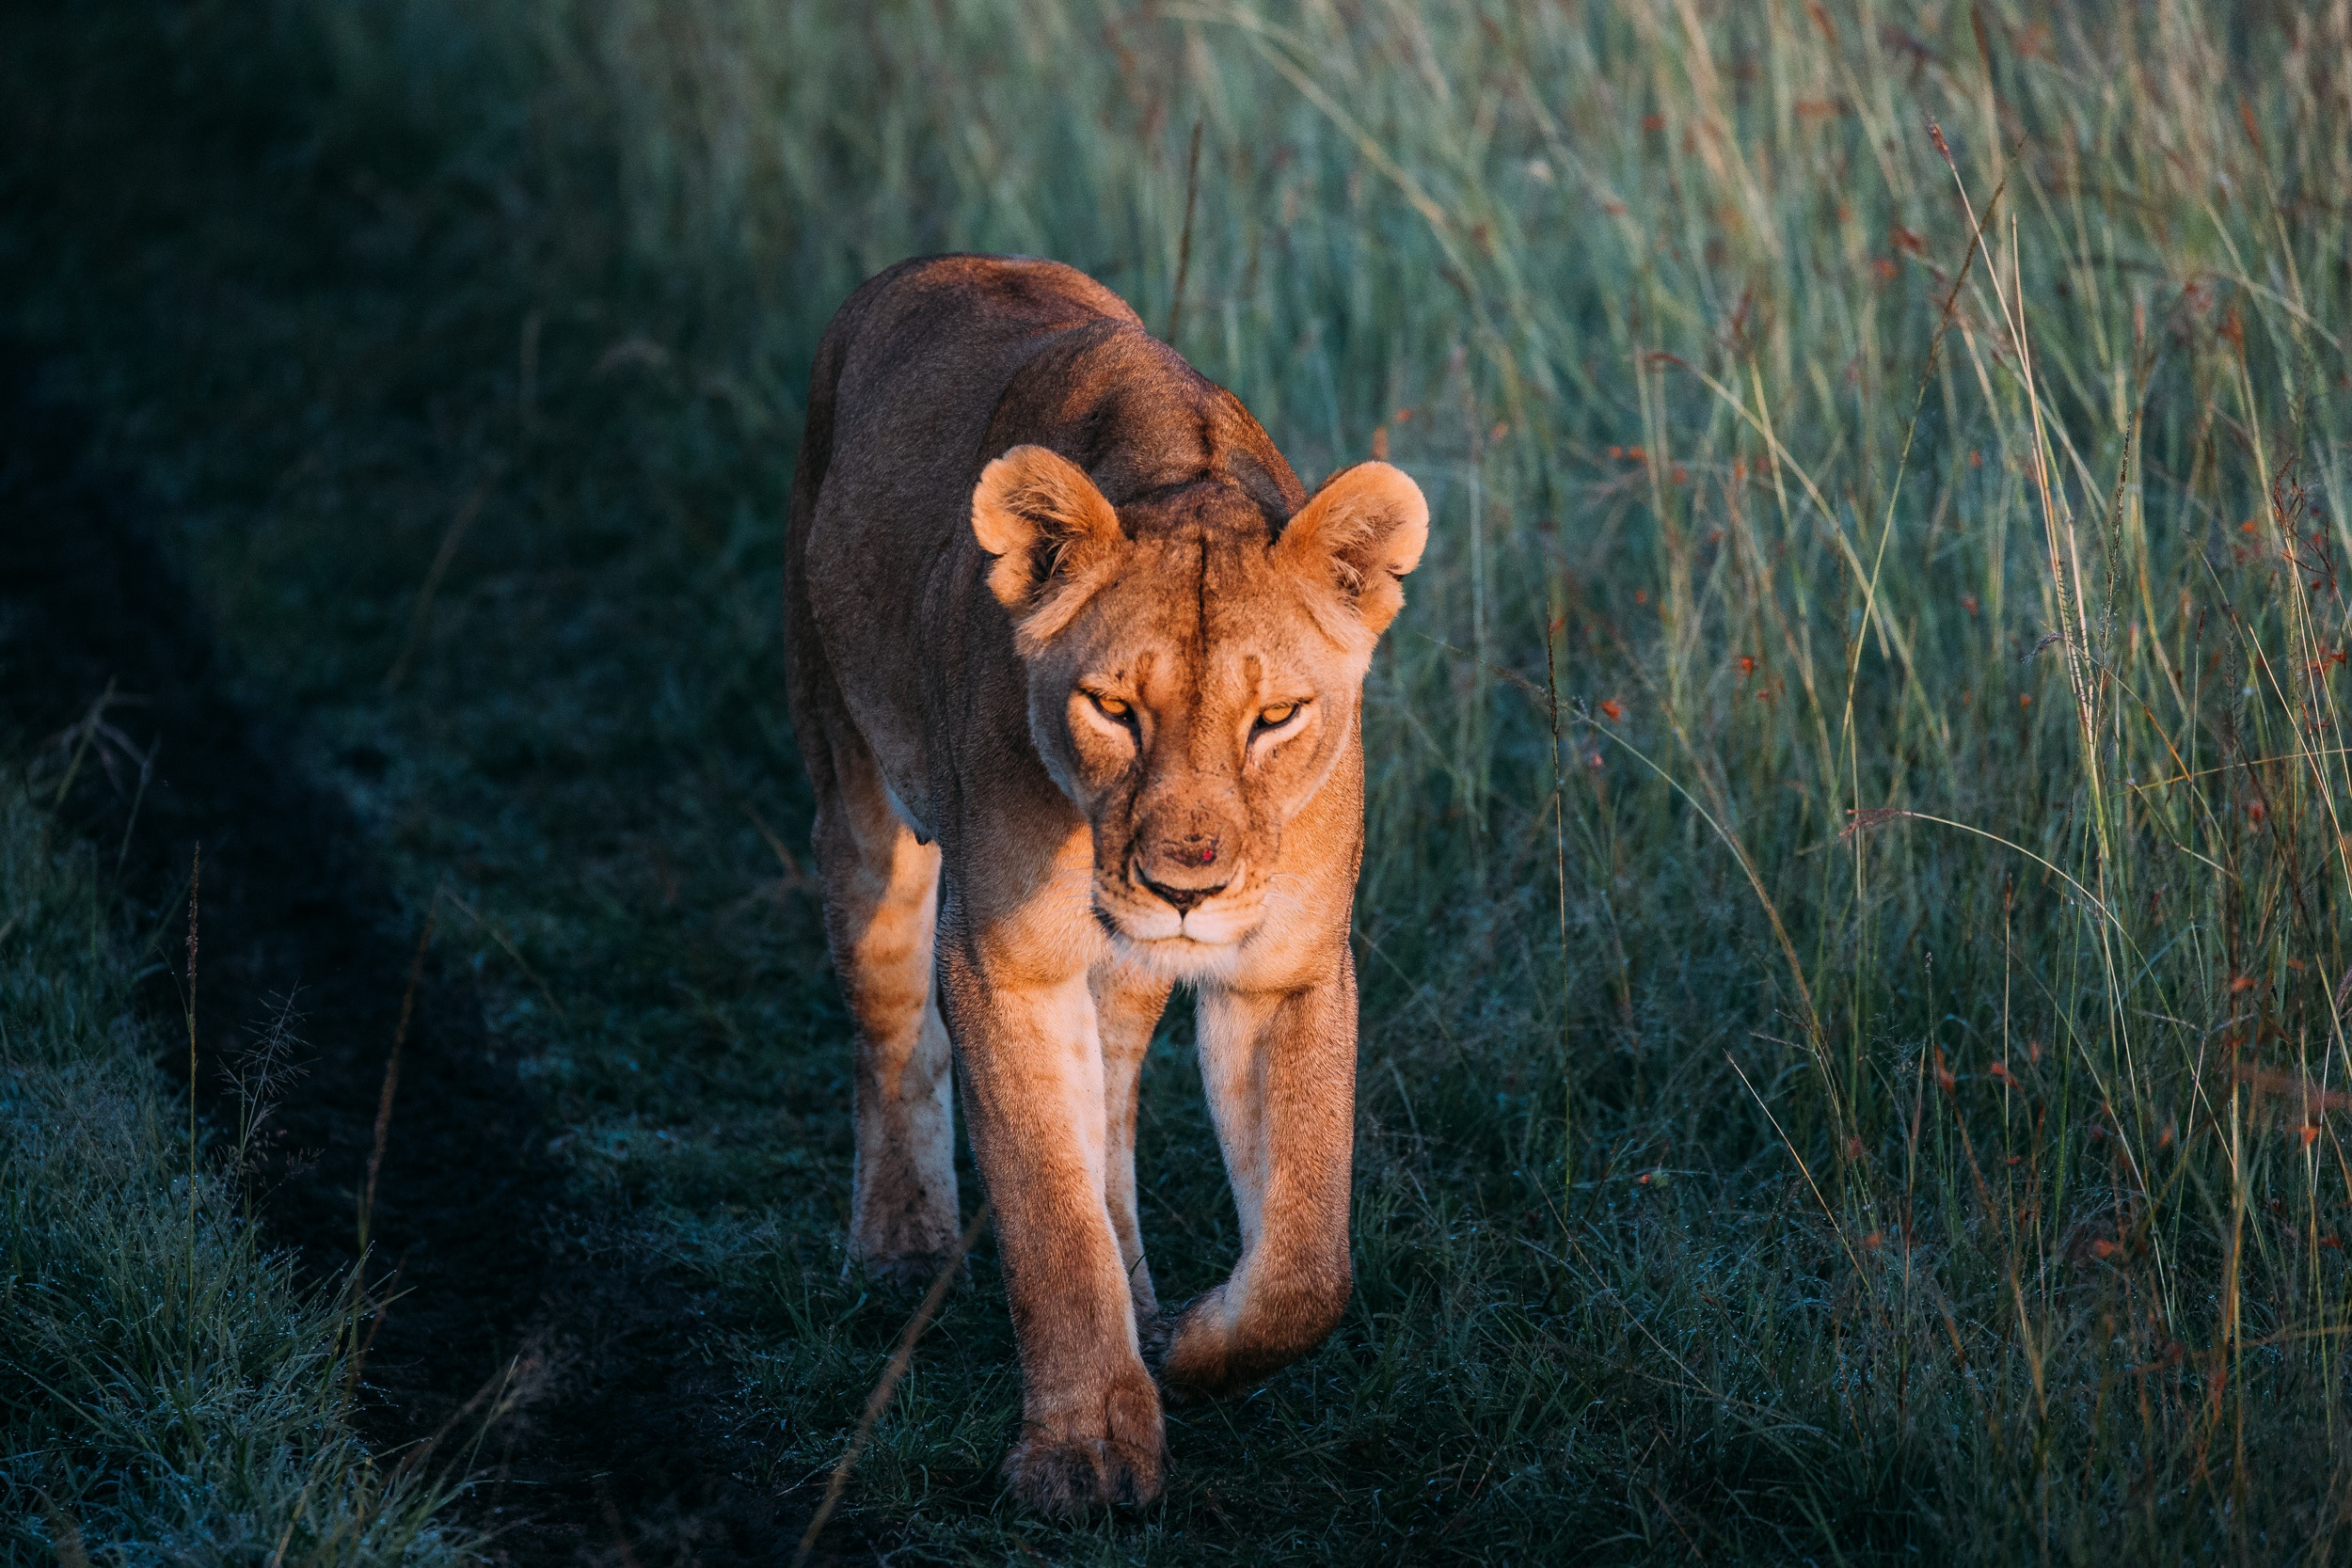 101731 download wallpaper Animals, Lioness, Lion, Predator, Grass, Stroll screensavers and pictures for free